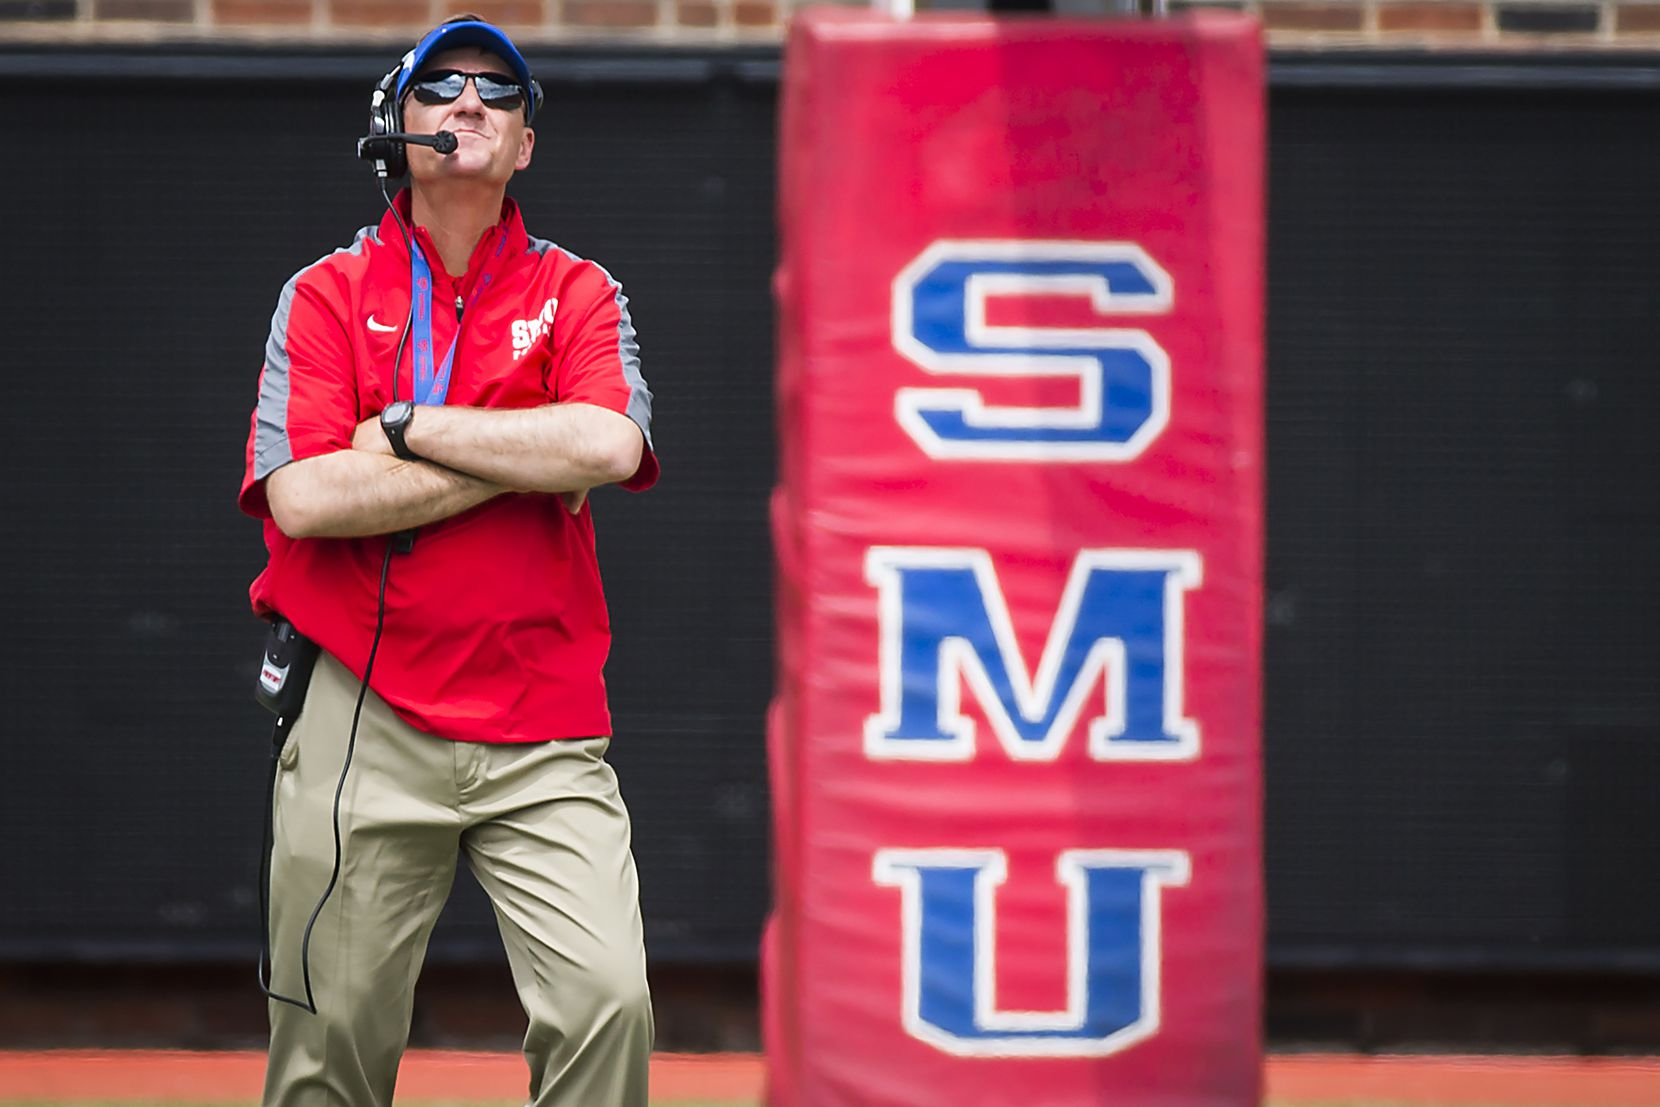 SMU head coach Chad Morris watches his players scrimmage during the team's spring football game at Ford Stadium on Saturday, April 16, 2016, in Dallas. (Smiley N. Pool/The Dallas Morning News)